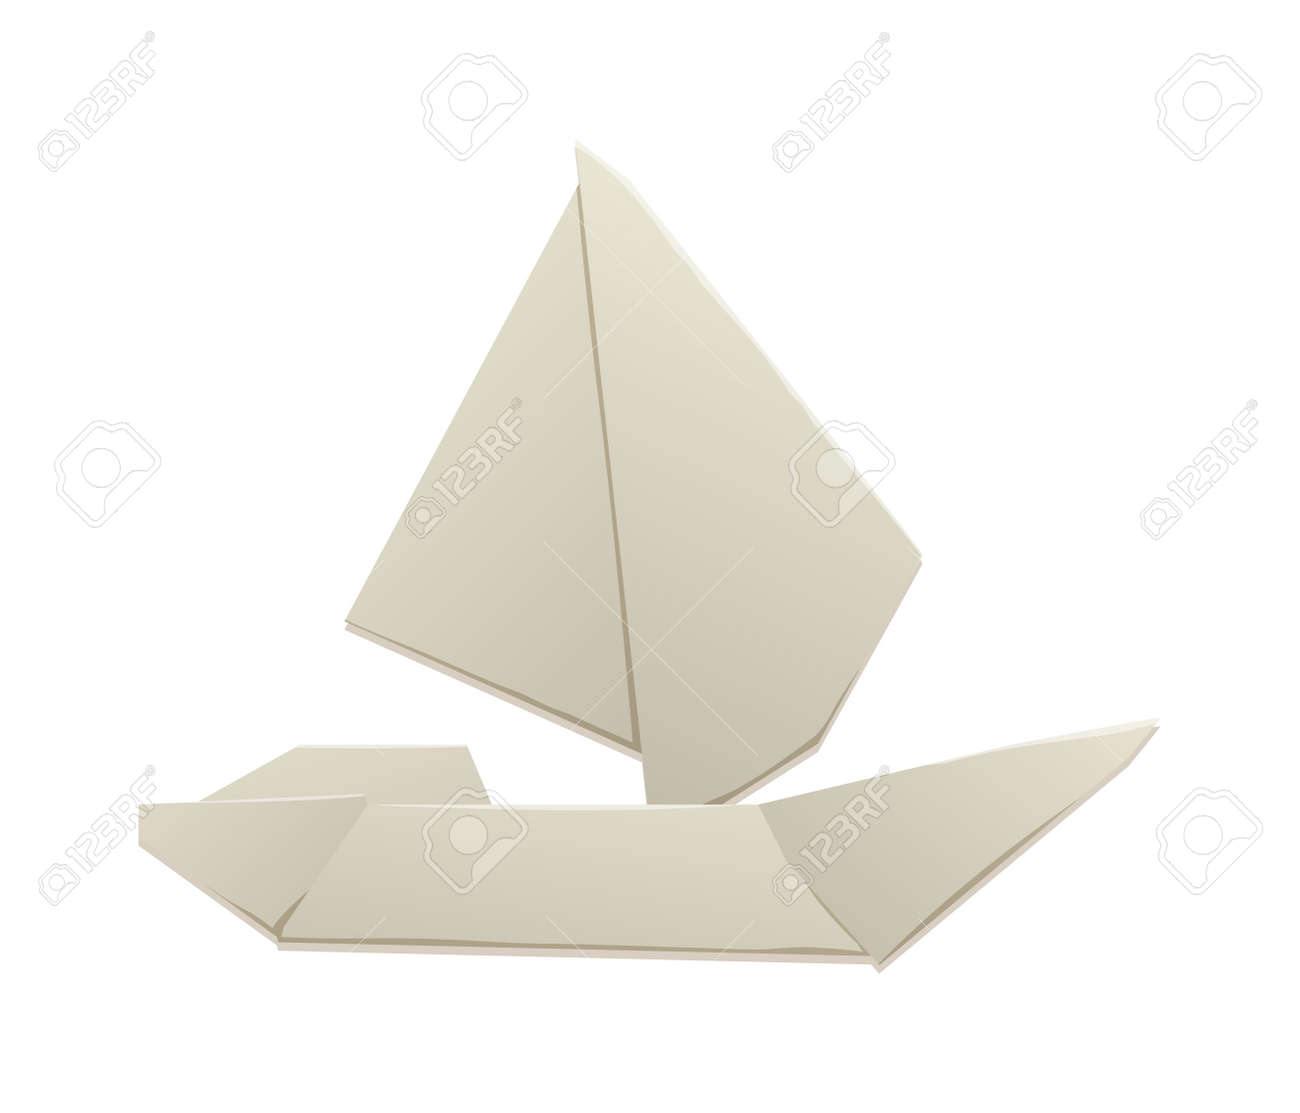 Vector toy ship white origami boat and travel sailboat toy ship toy ship fun model yacht andplay small toy ship transportation ocean cruise children toy and game craft old souvenir origami toy jeuxipadfo Images